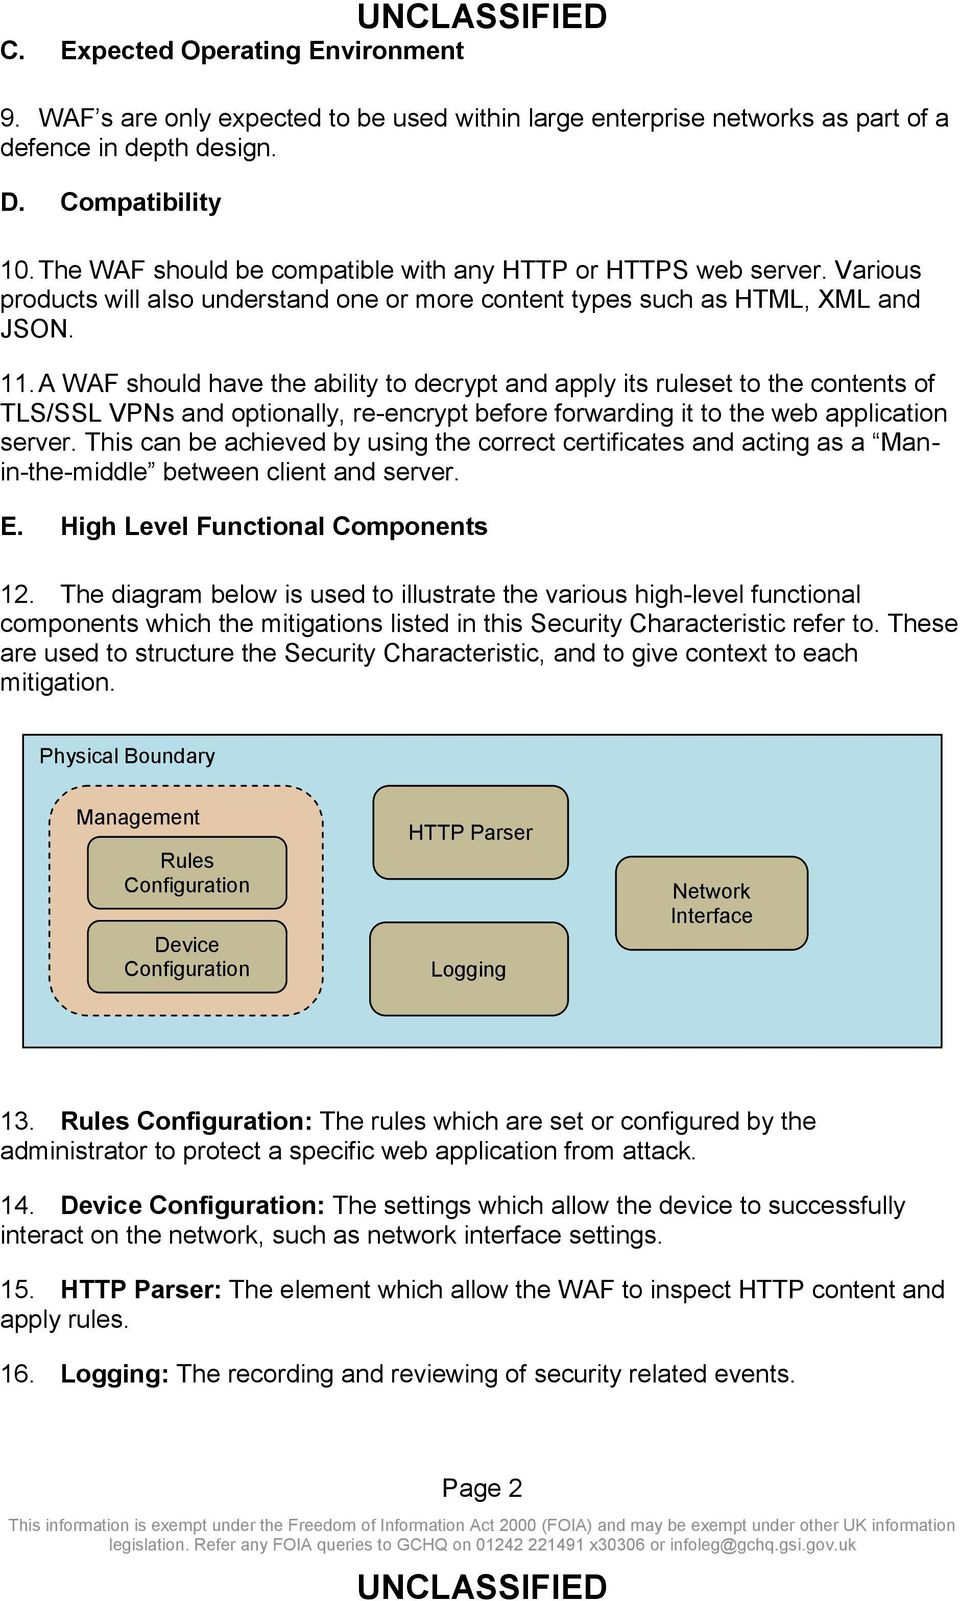 A WAF should have the ability to decrypt and apply its ruleset to the contents of TLS/SSL VPNs and optionally, re-encrypt before forwarding it to the web application server.